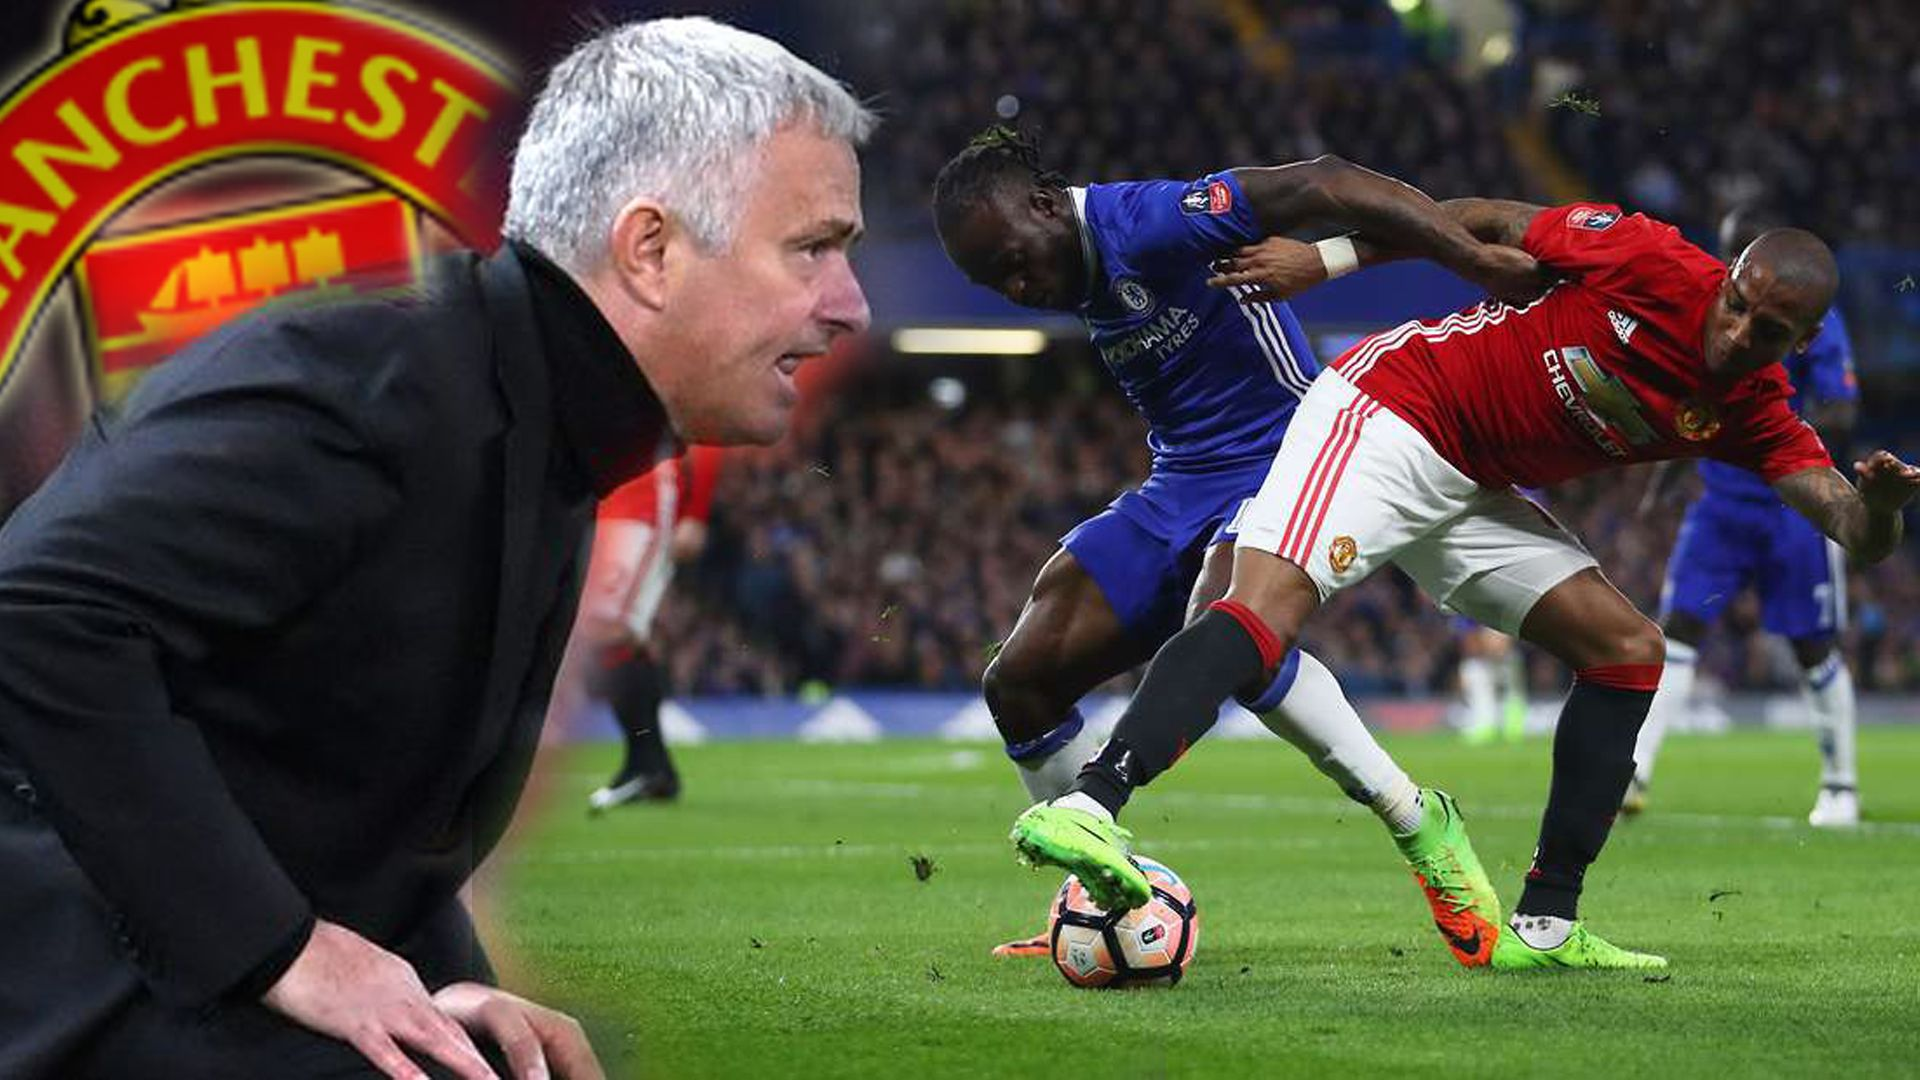 Red Devils Beating To Sign Chelsea S Victor Moses Manchester United Transfer News Now Manchester United Transfer Manchester United Transfer News Victor Moses